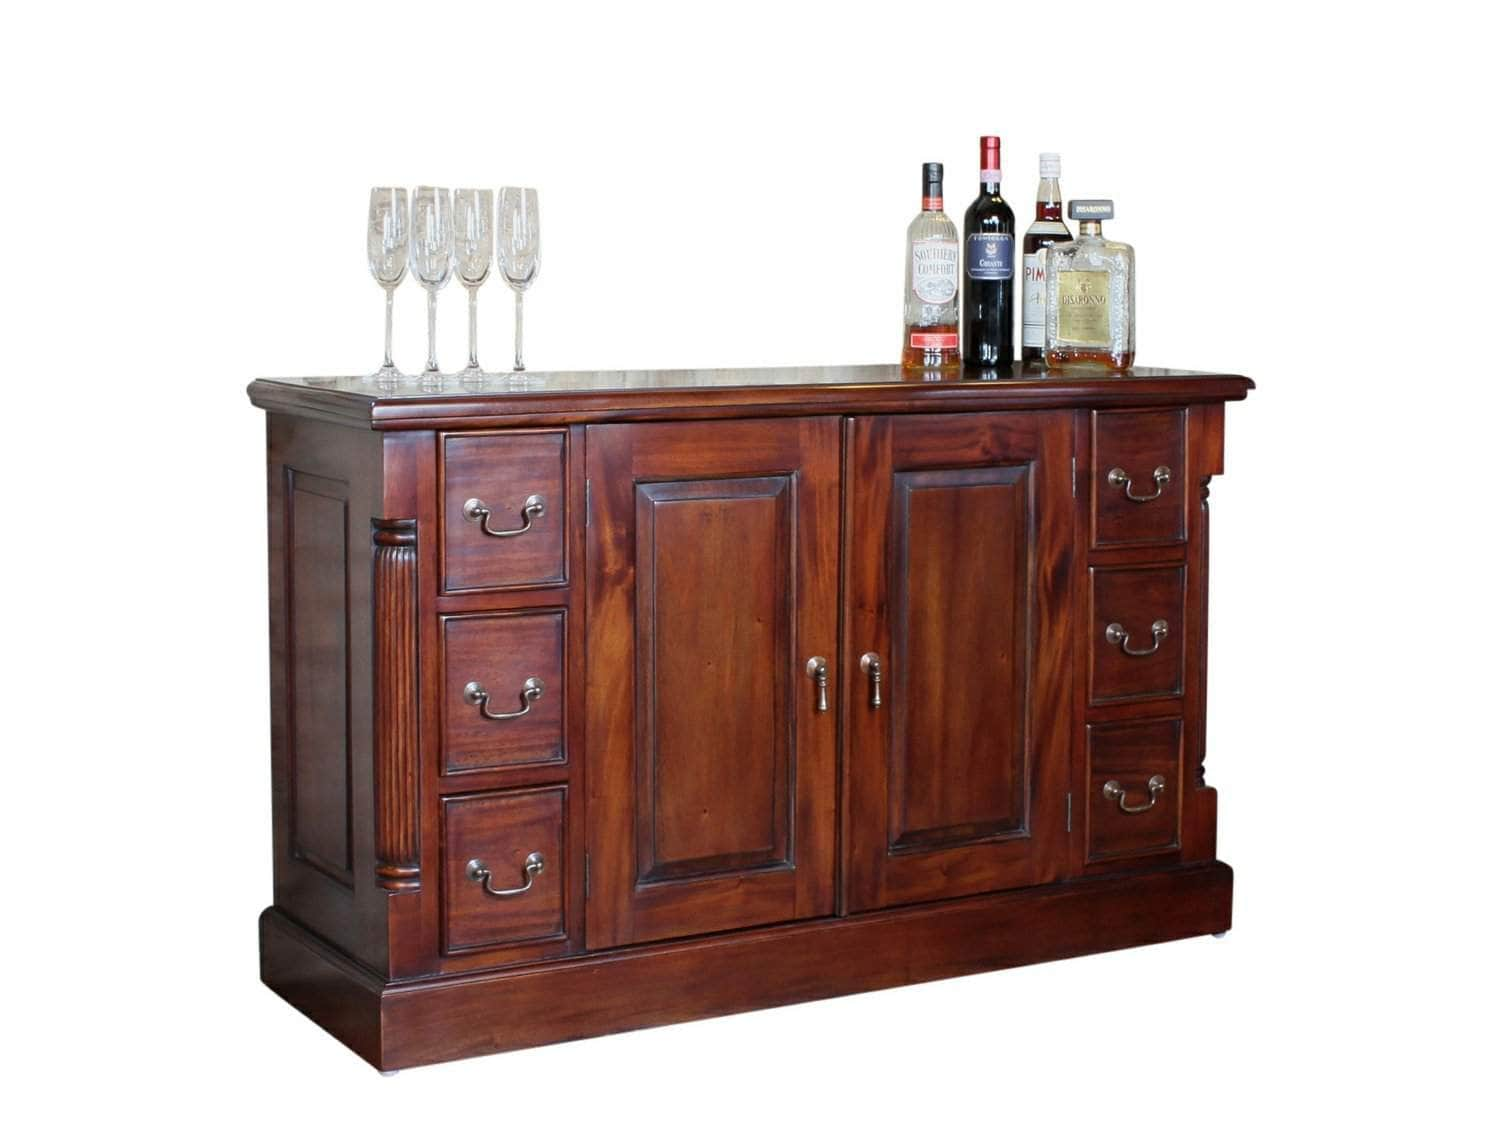 Large, solid mahogany sideboard. Features six small drawers and one large cupboard.